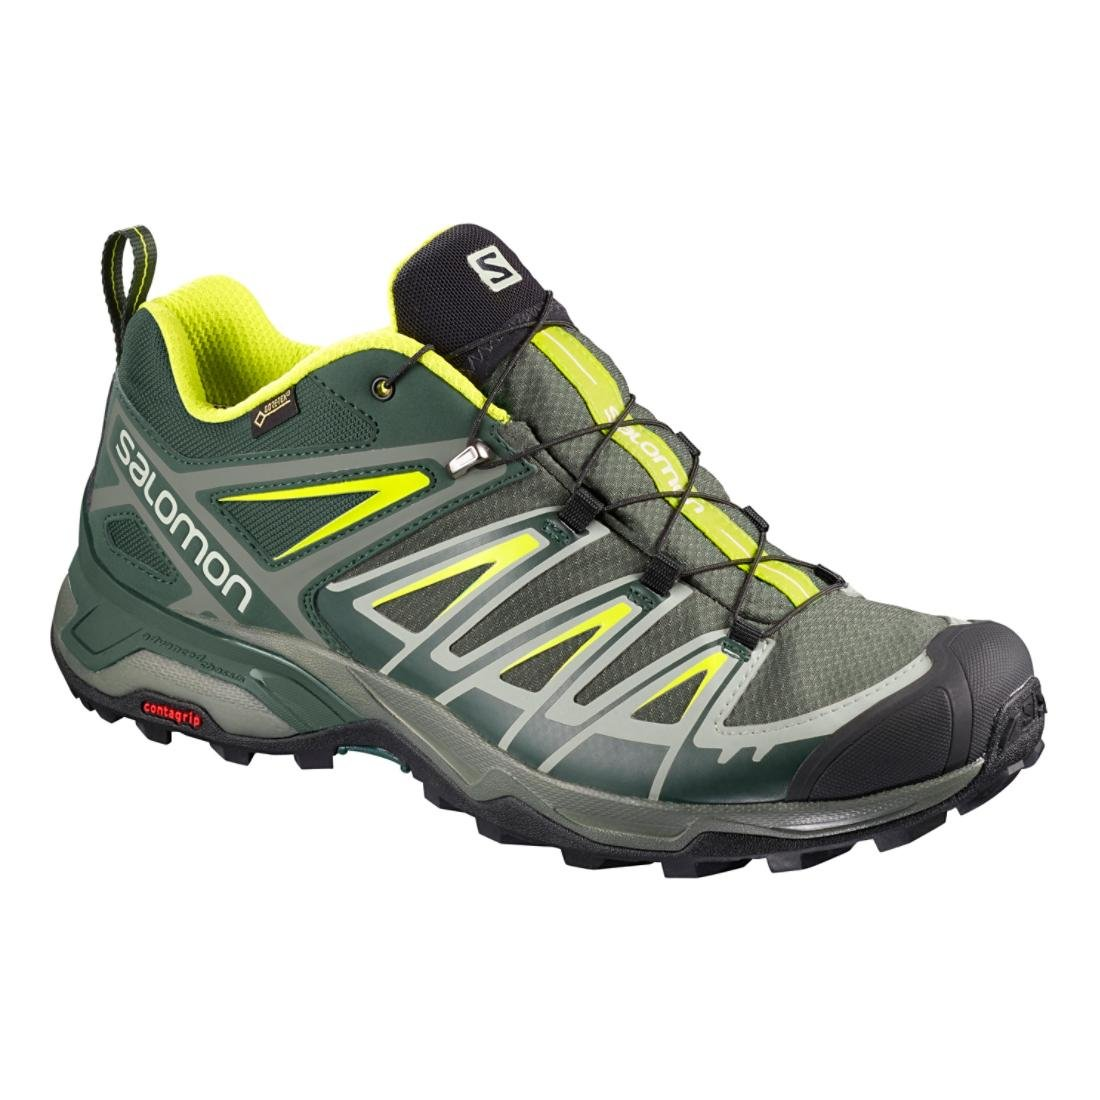 96d64e8dc330 Salomon Men s X Ultra 3 GTX Shoes Castor Gray Darkest Spruce Acid Lime  12.5  Buy Online at Low Prices in India - Amazon.in